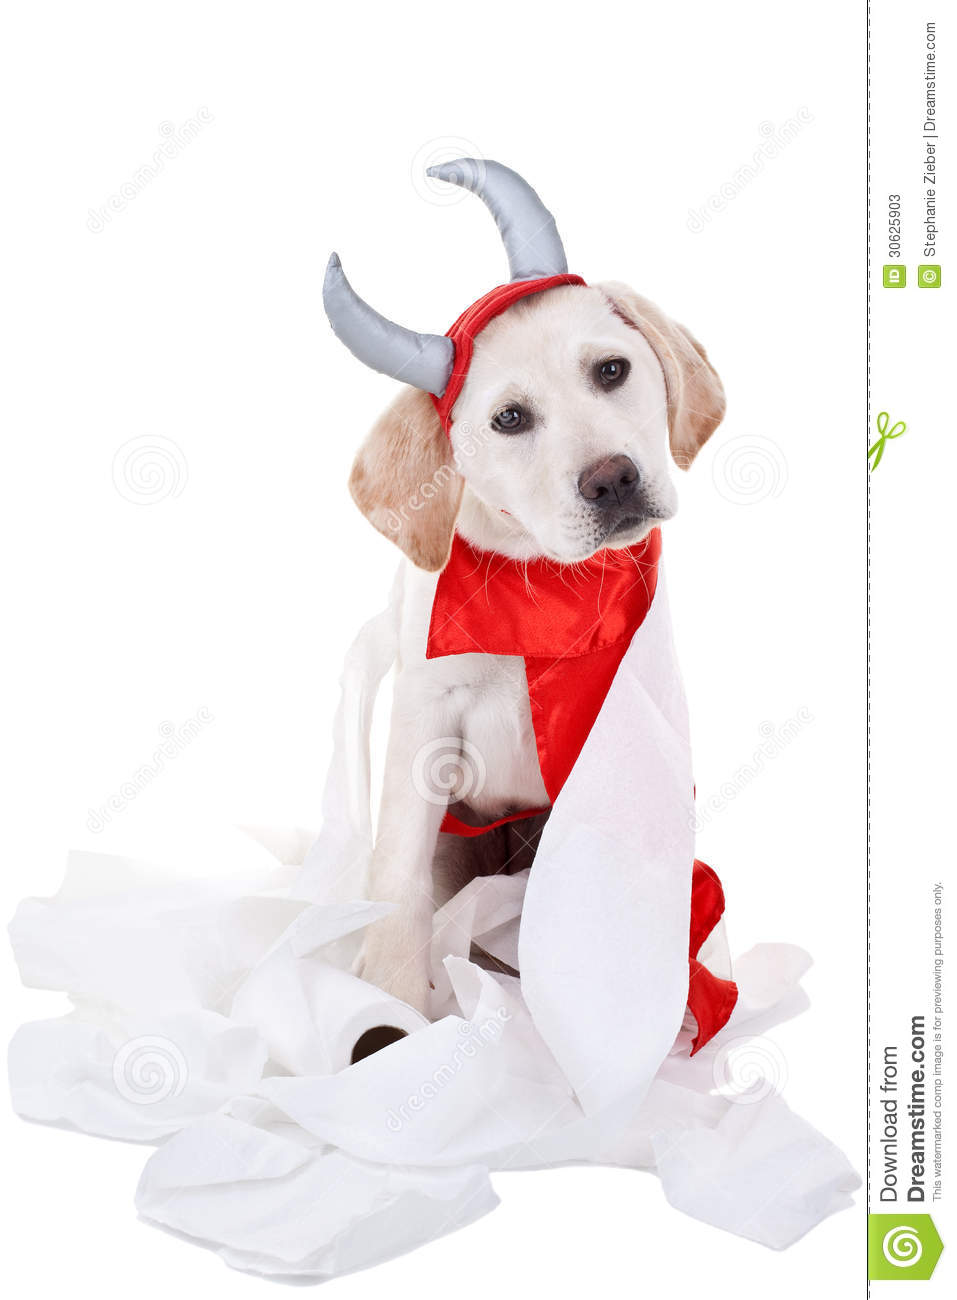 Bad Dog Stock Photos - Image: 30625903